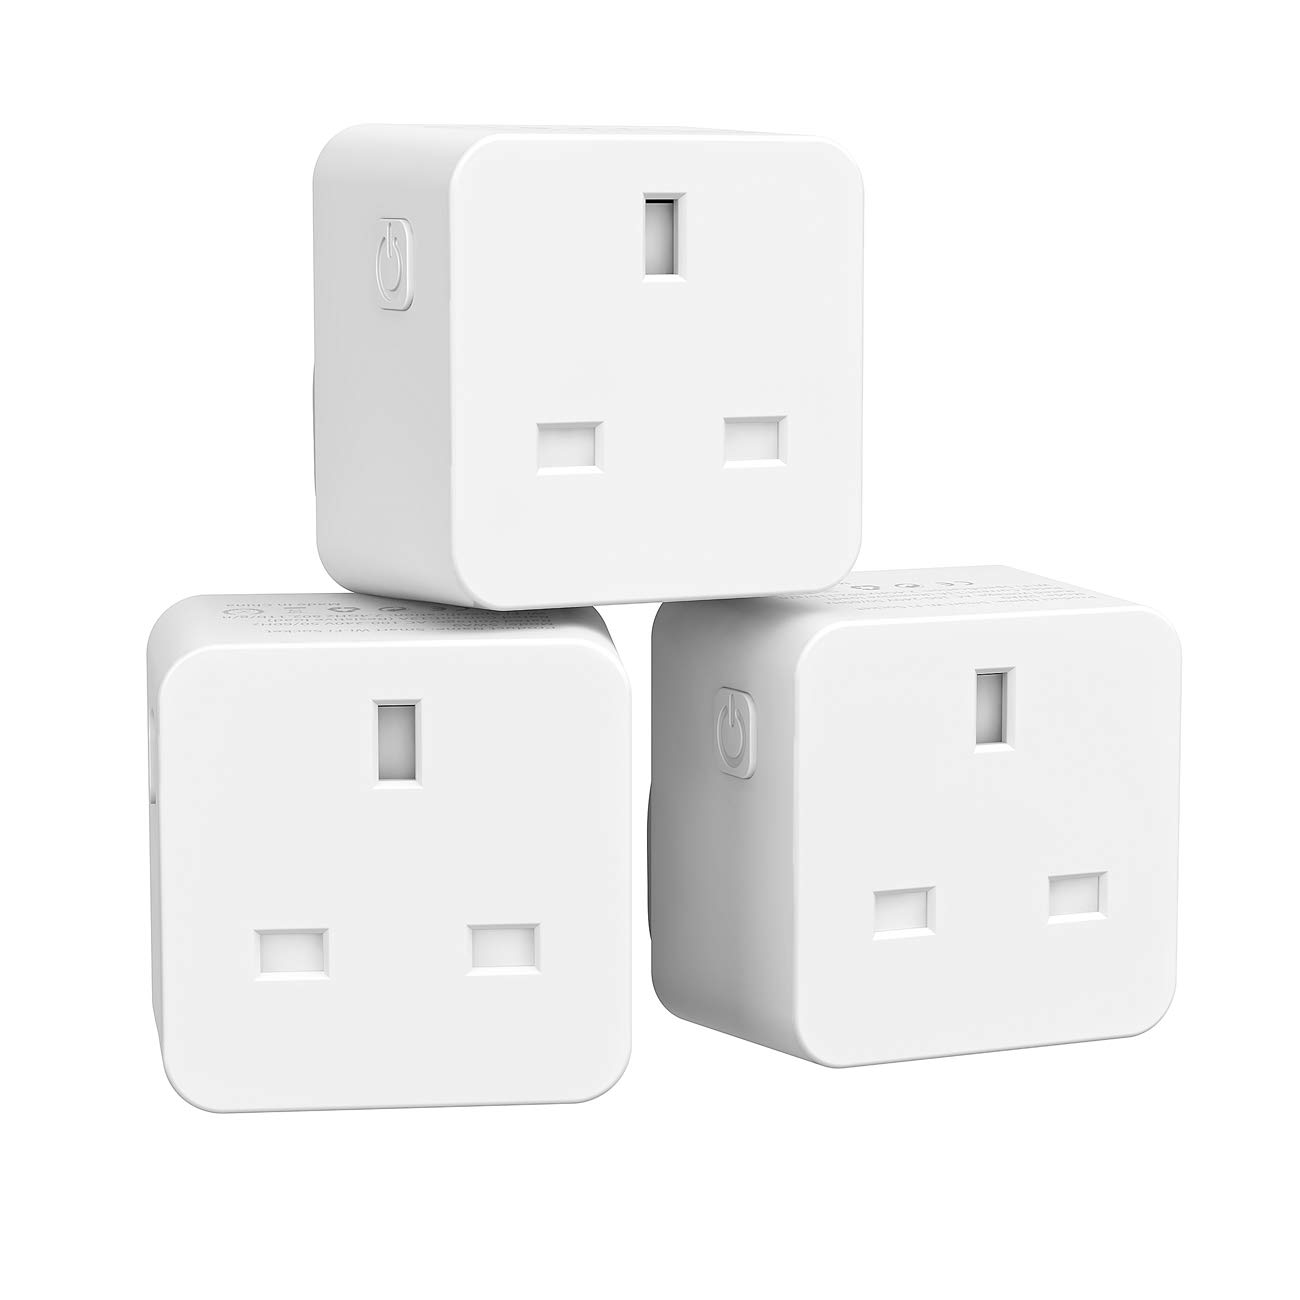 EXTSUD Smart Plug WiFi Plug, Wireless Smart Socket Timer Switch Power Outlet Compatible with Alexa Echo Google Home Assistant, Remote Control Your Devices by Smartphone (3 Pack)